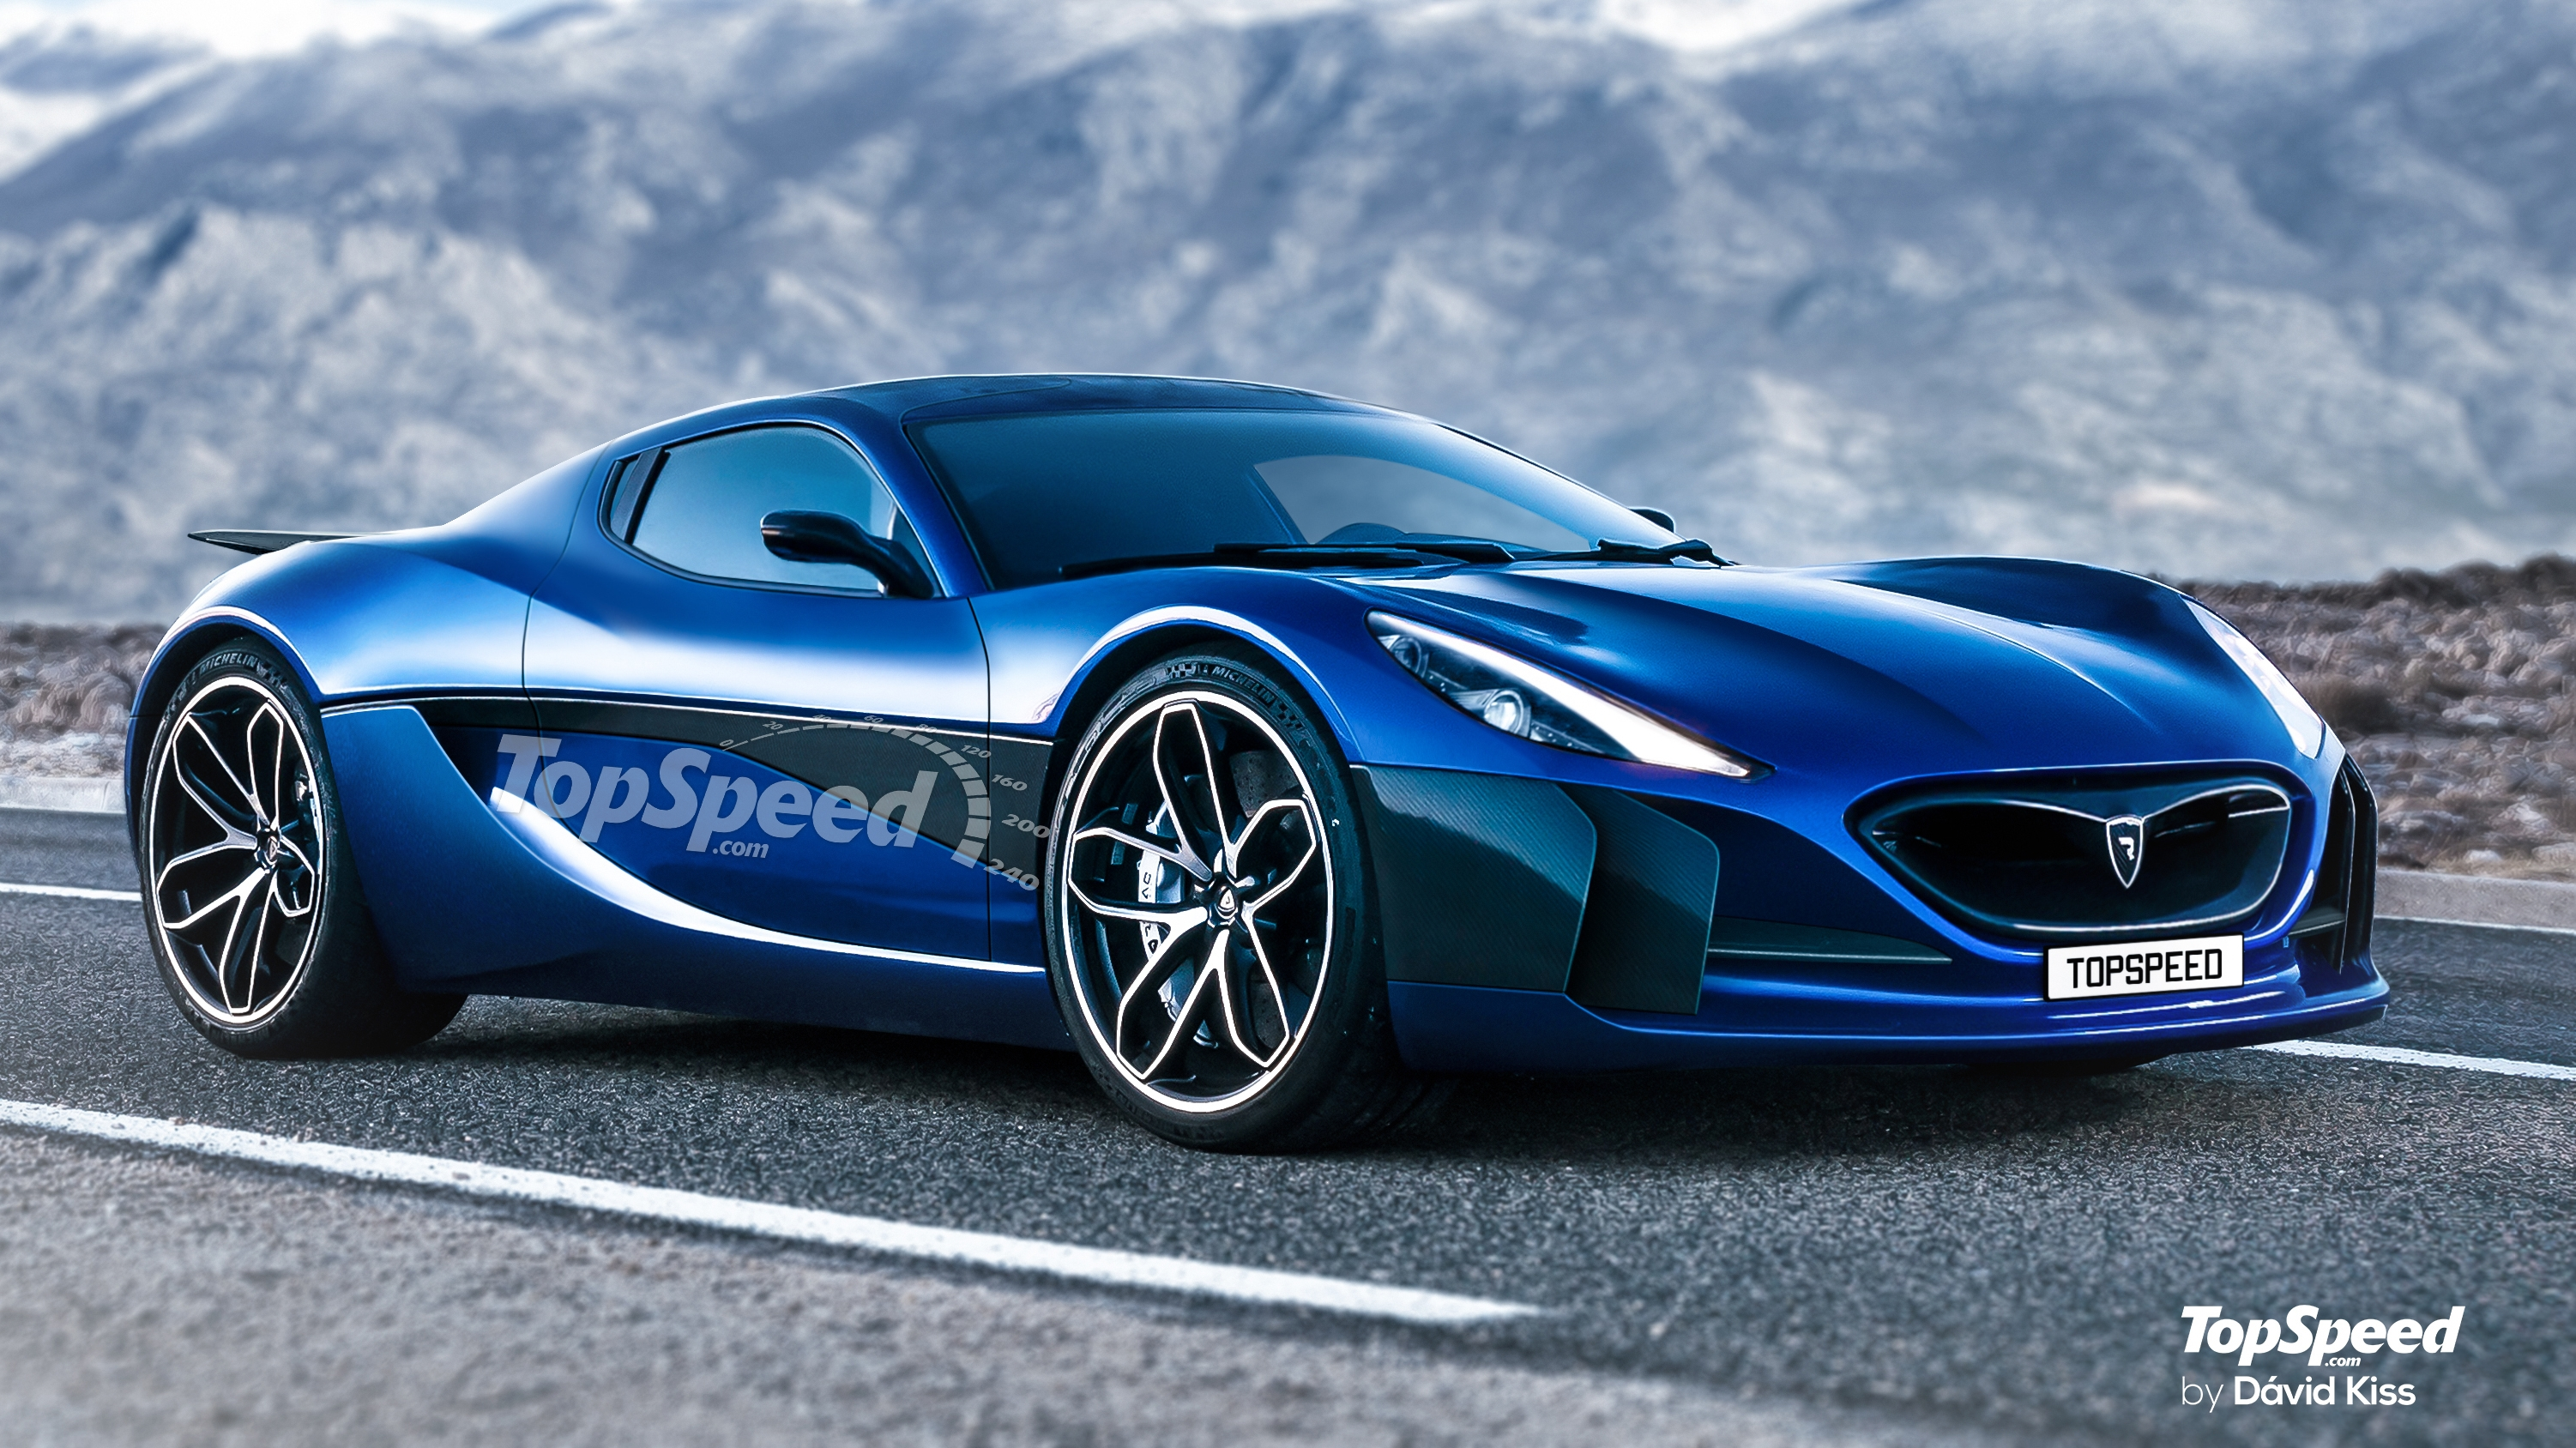 2019 Rimac Concept Two News Top Speed